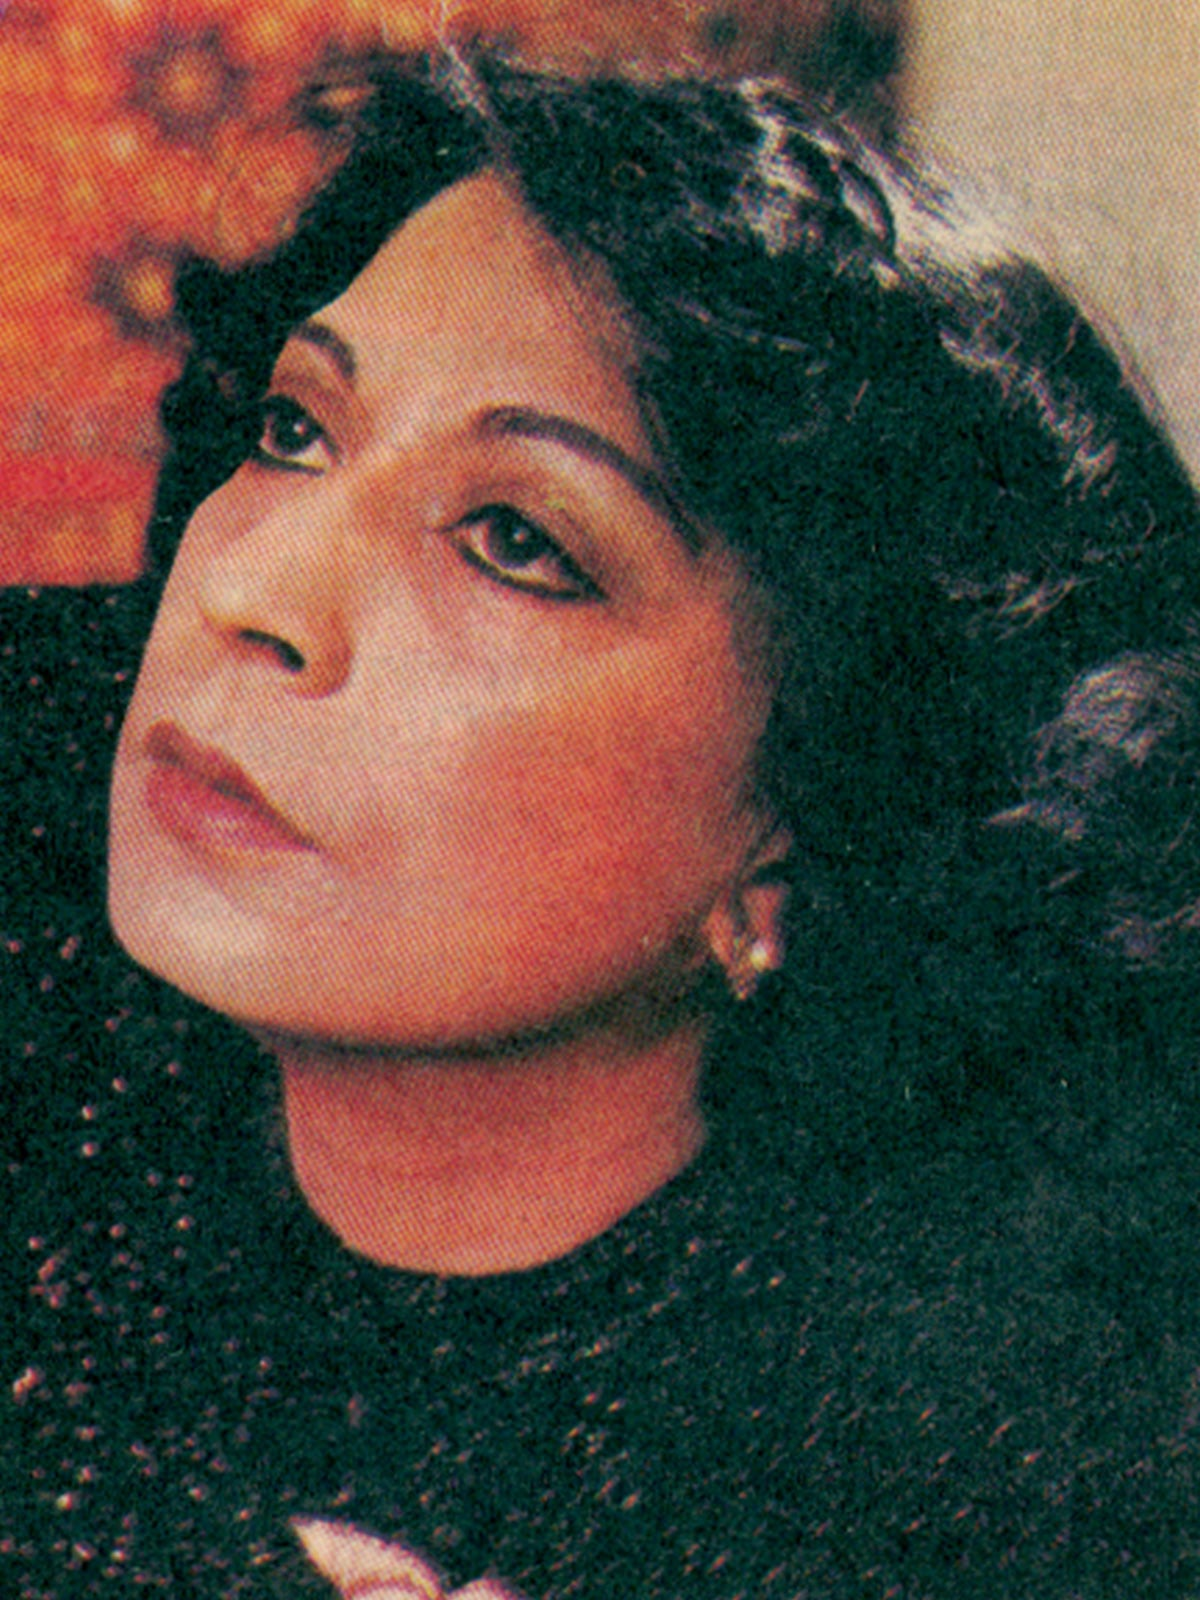 Nayyar Kamal (Best Actress for *Chappar Chaon*)